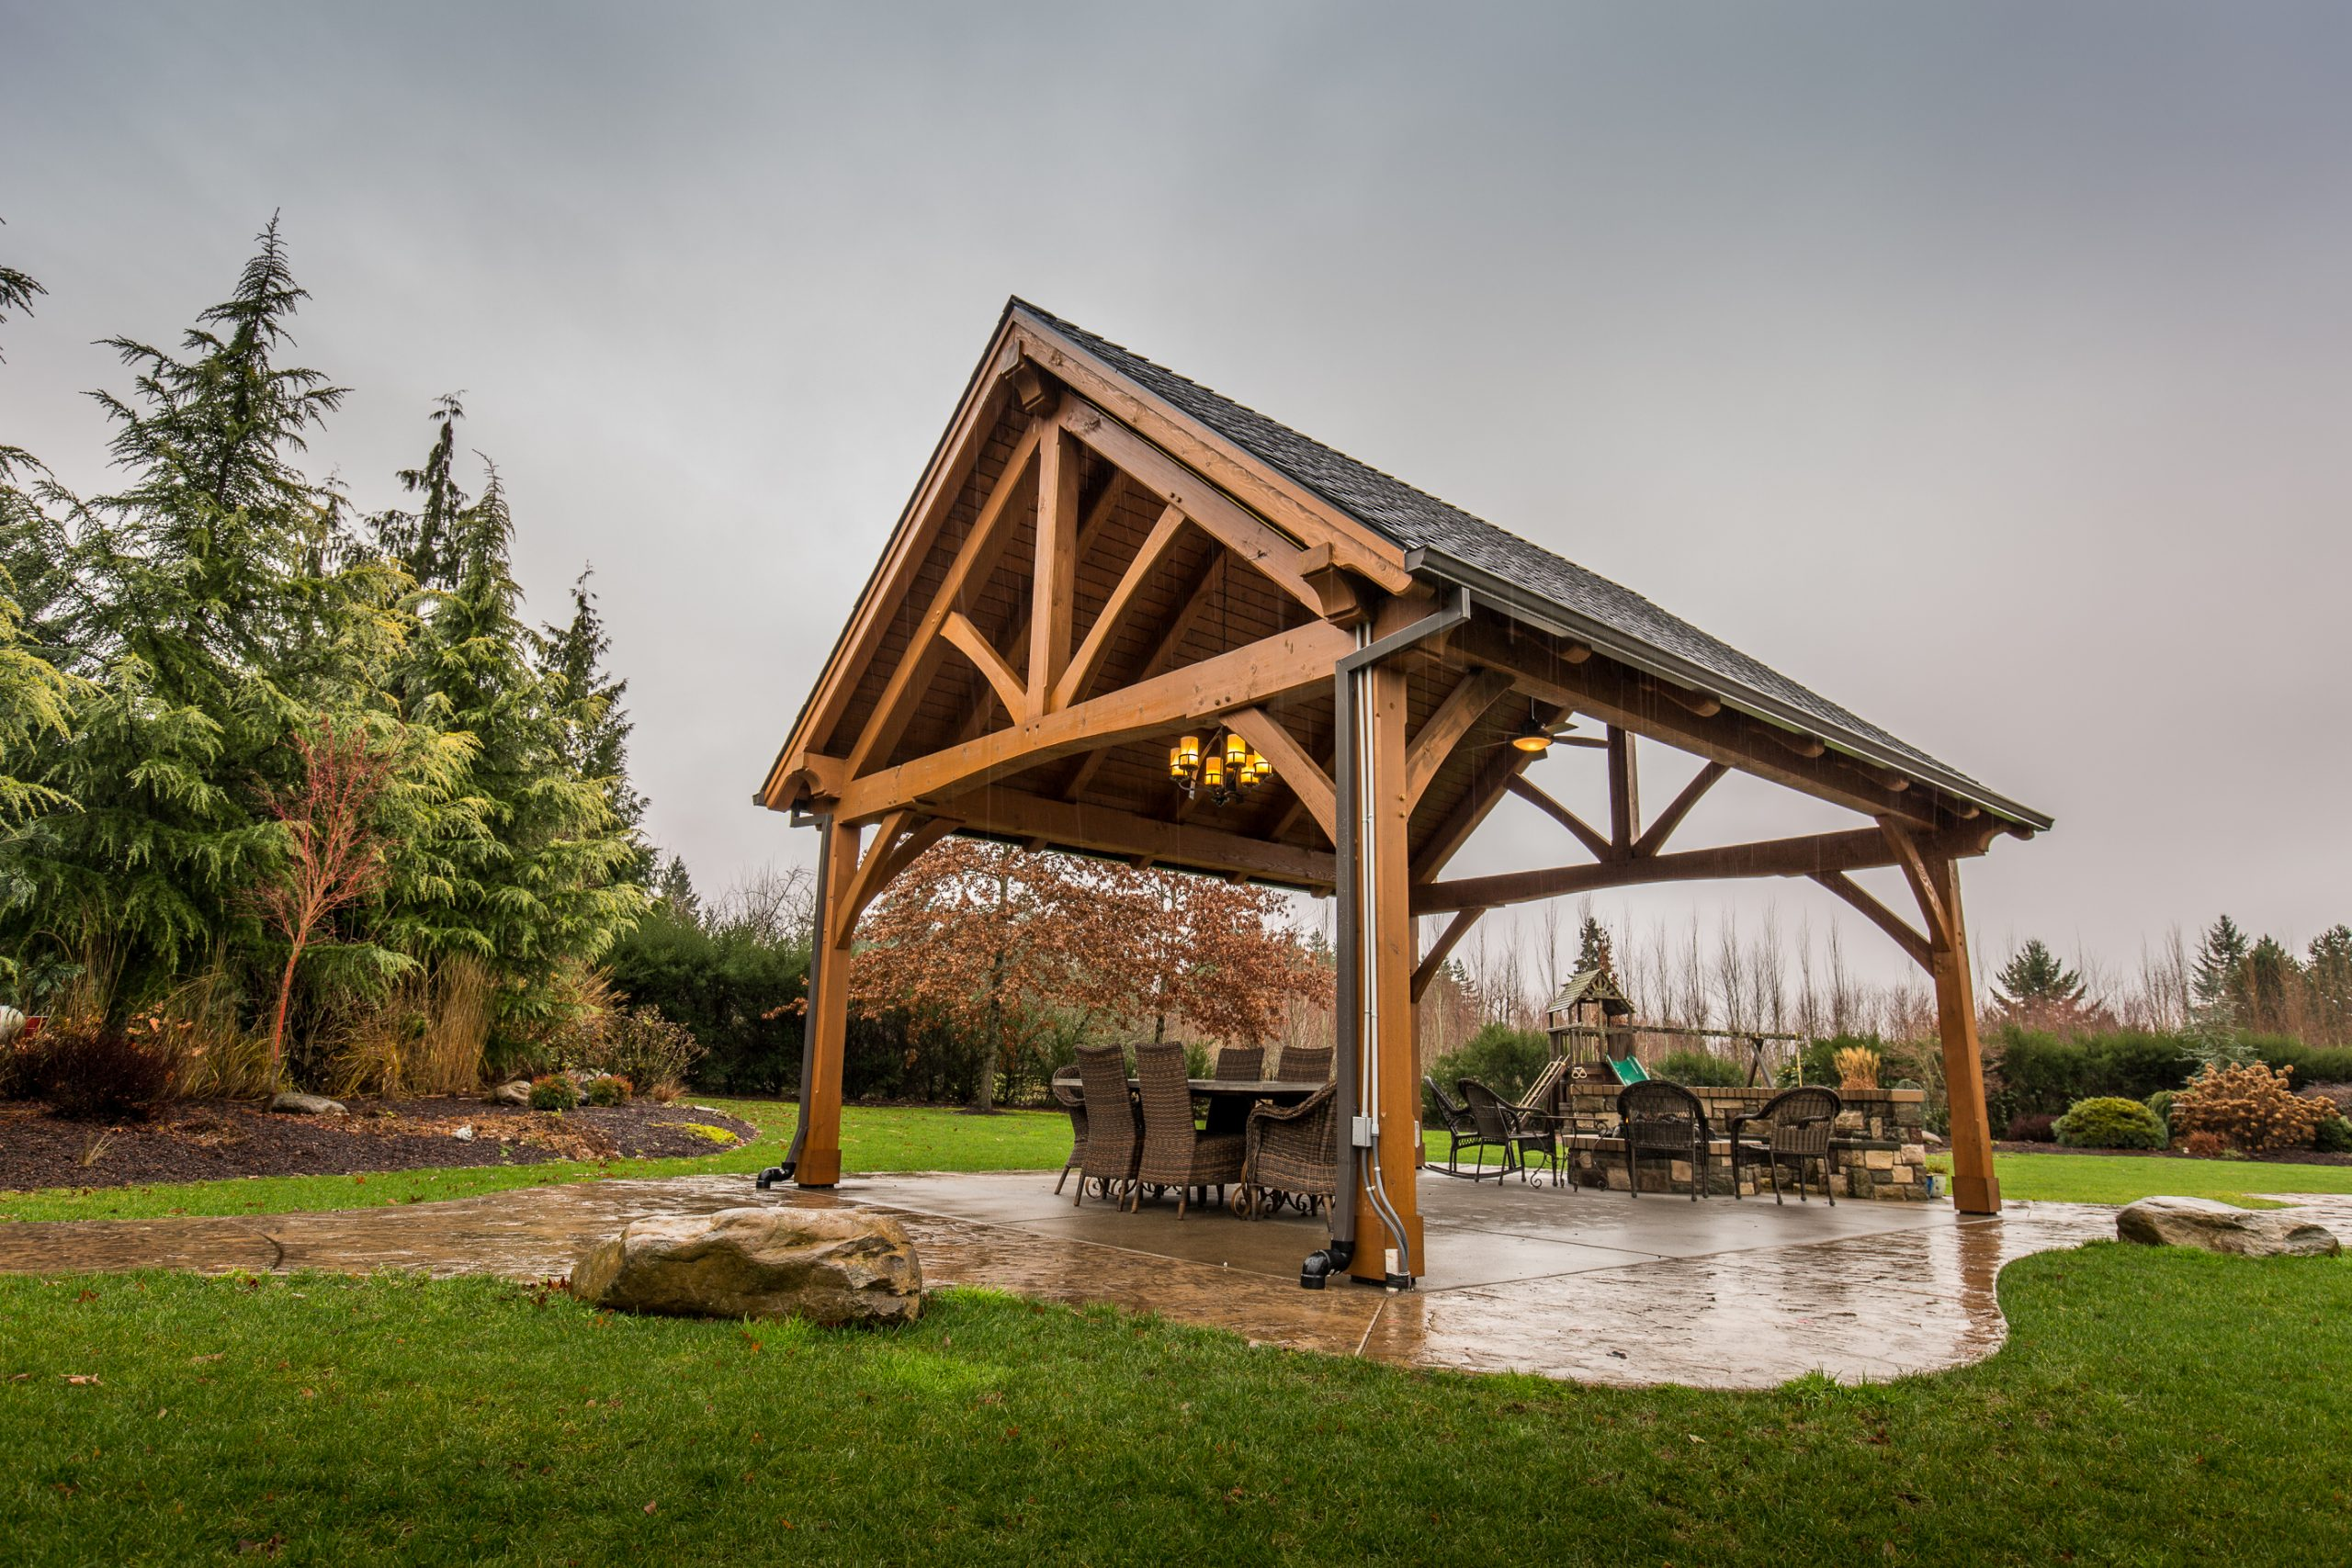 The Rainier Timber Frame Style Pavilion Kit in Boring, OR Outside_2